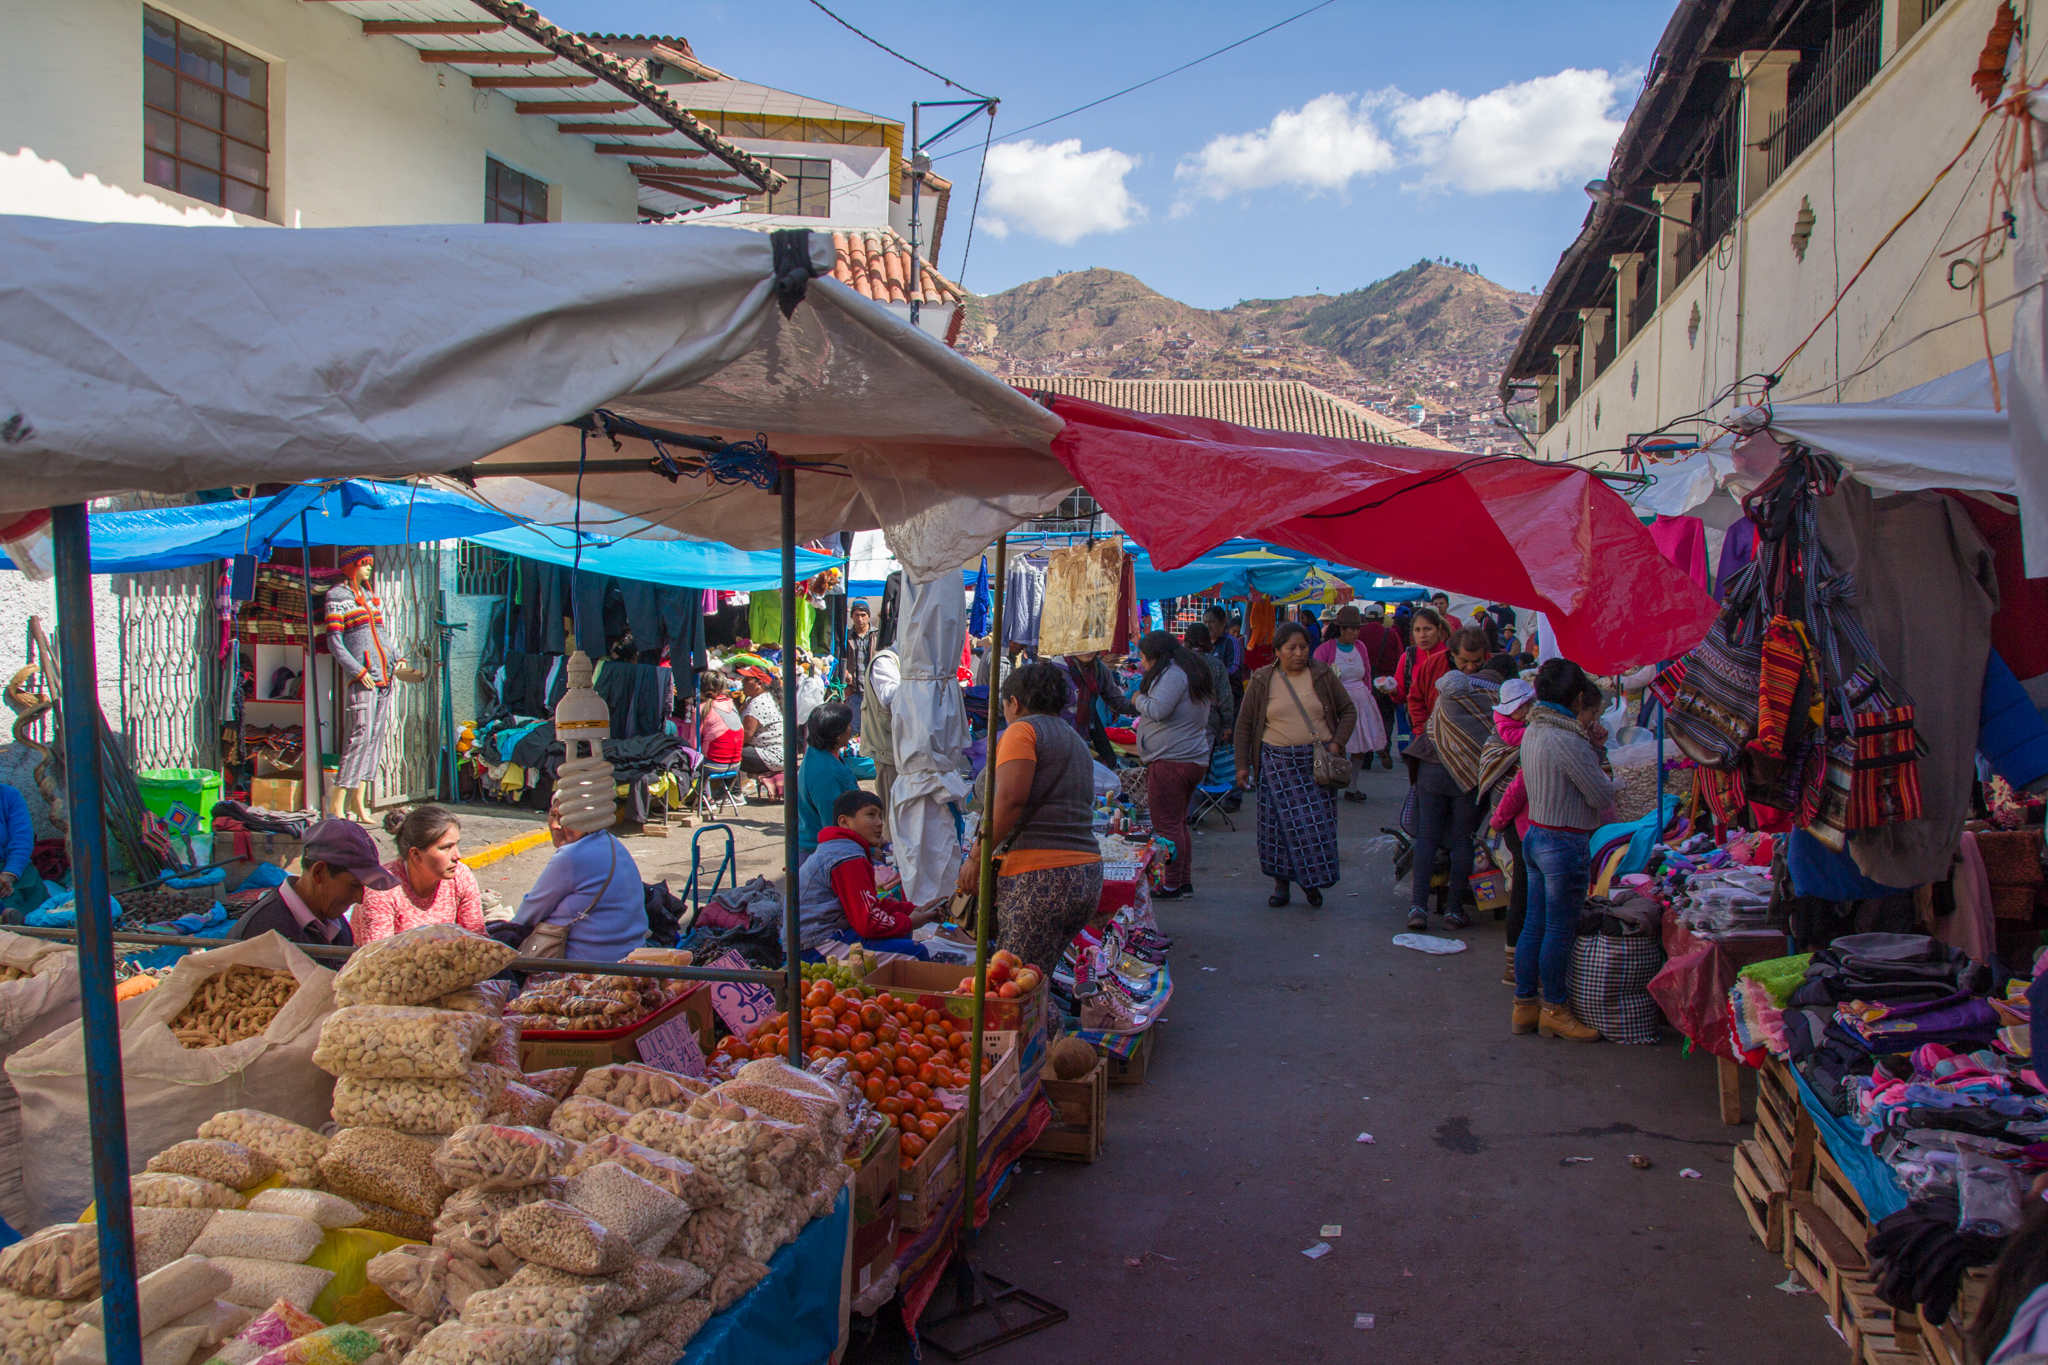 We go to many different markets, whenever we pass one on the street we always stop by!